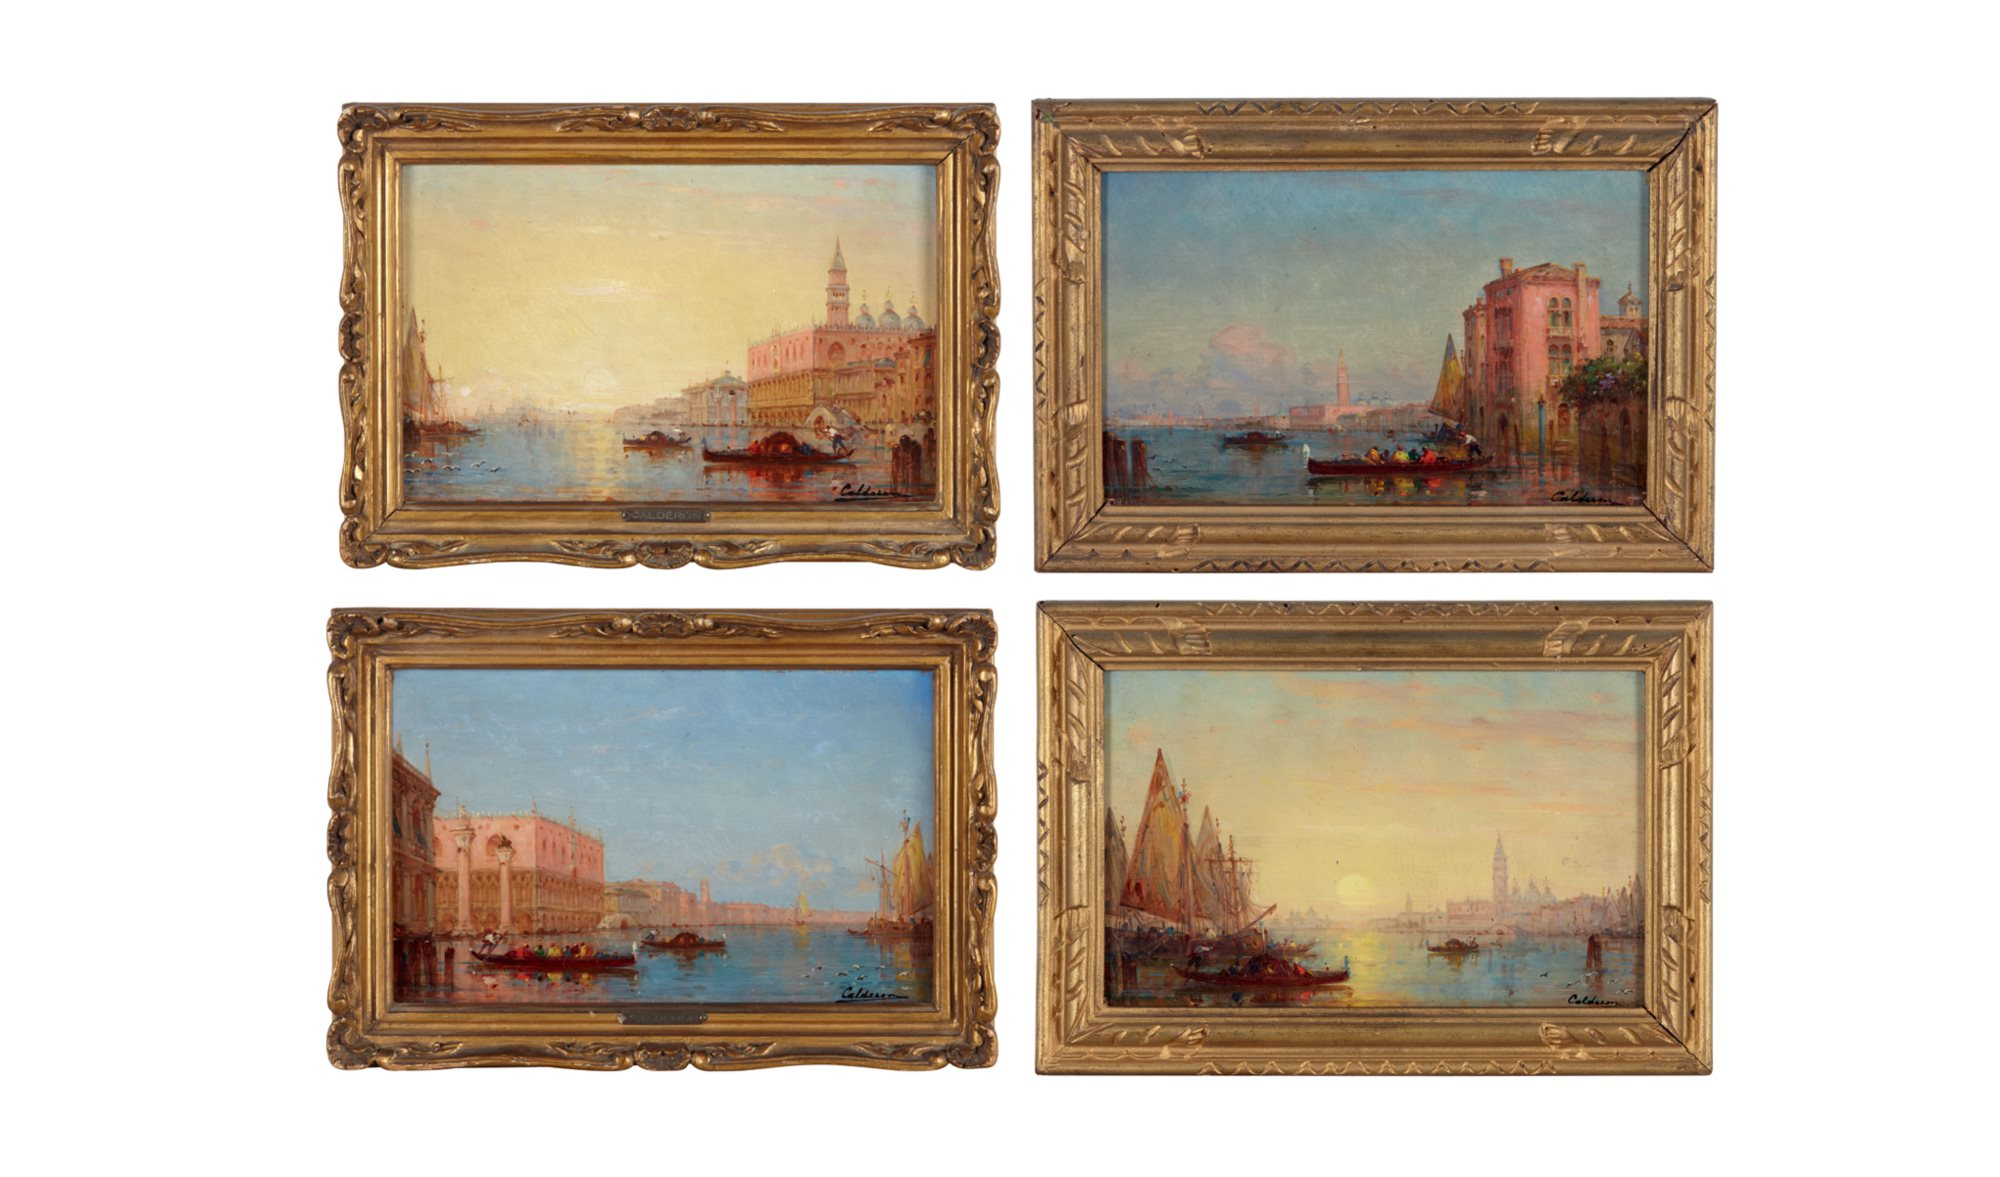 Charles Calderon (French 1870–1906)  Le Bassin de Saint-Marc au Couchant; with three other scenes, All signed 'Calderon' bottom right; also with artist's wax seal on the back of three of the works, oils on panel  Each: 5 1/2 x 8 3/4 in. $8,000-12,000